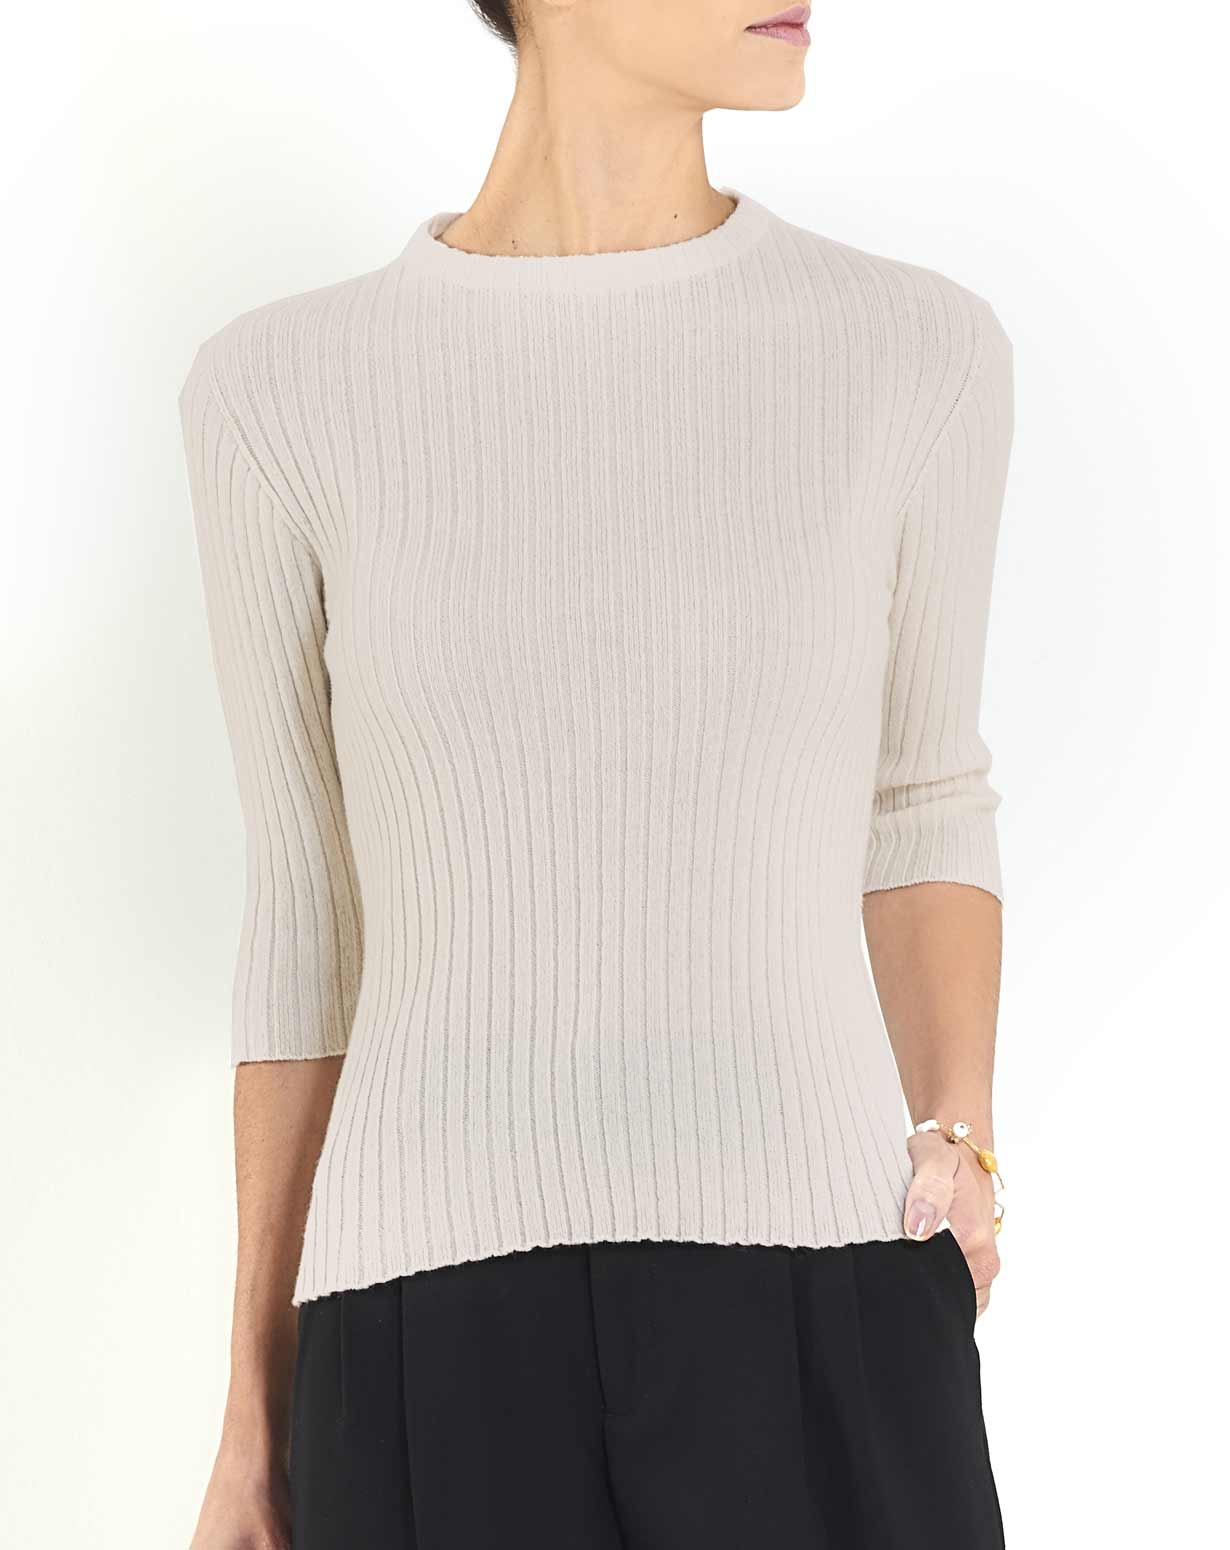 Ladies' Cashmere Ribbed 3/4 Sleeve Crew Neck